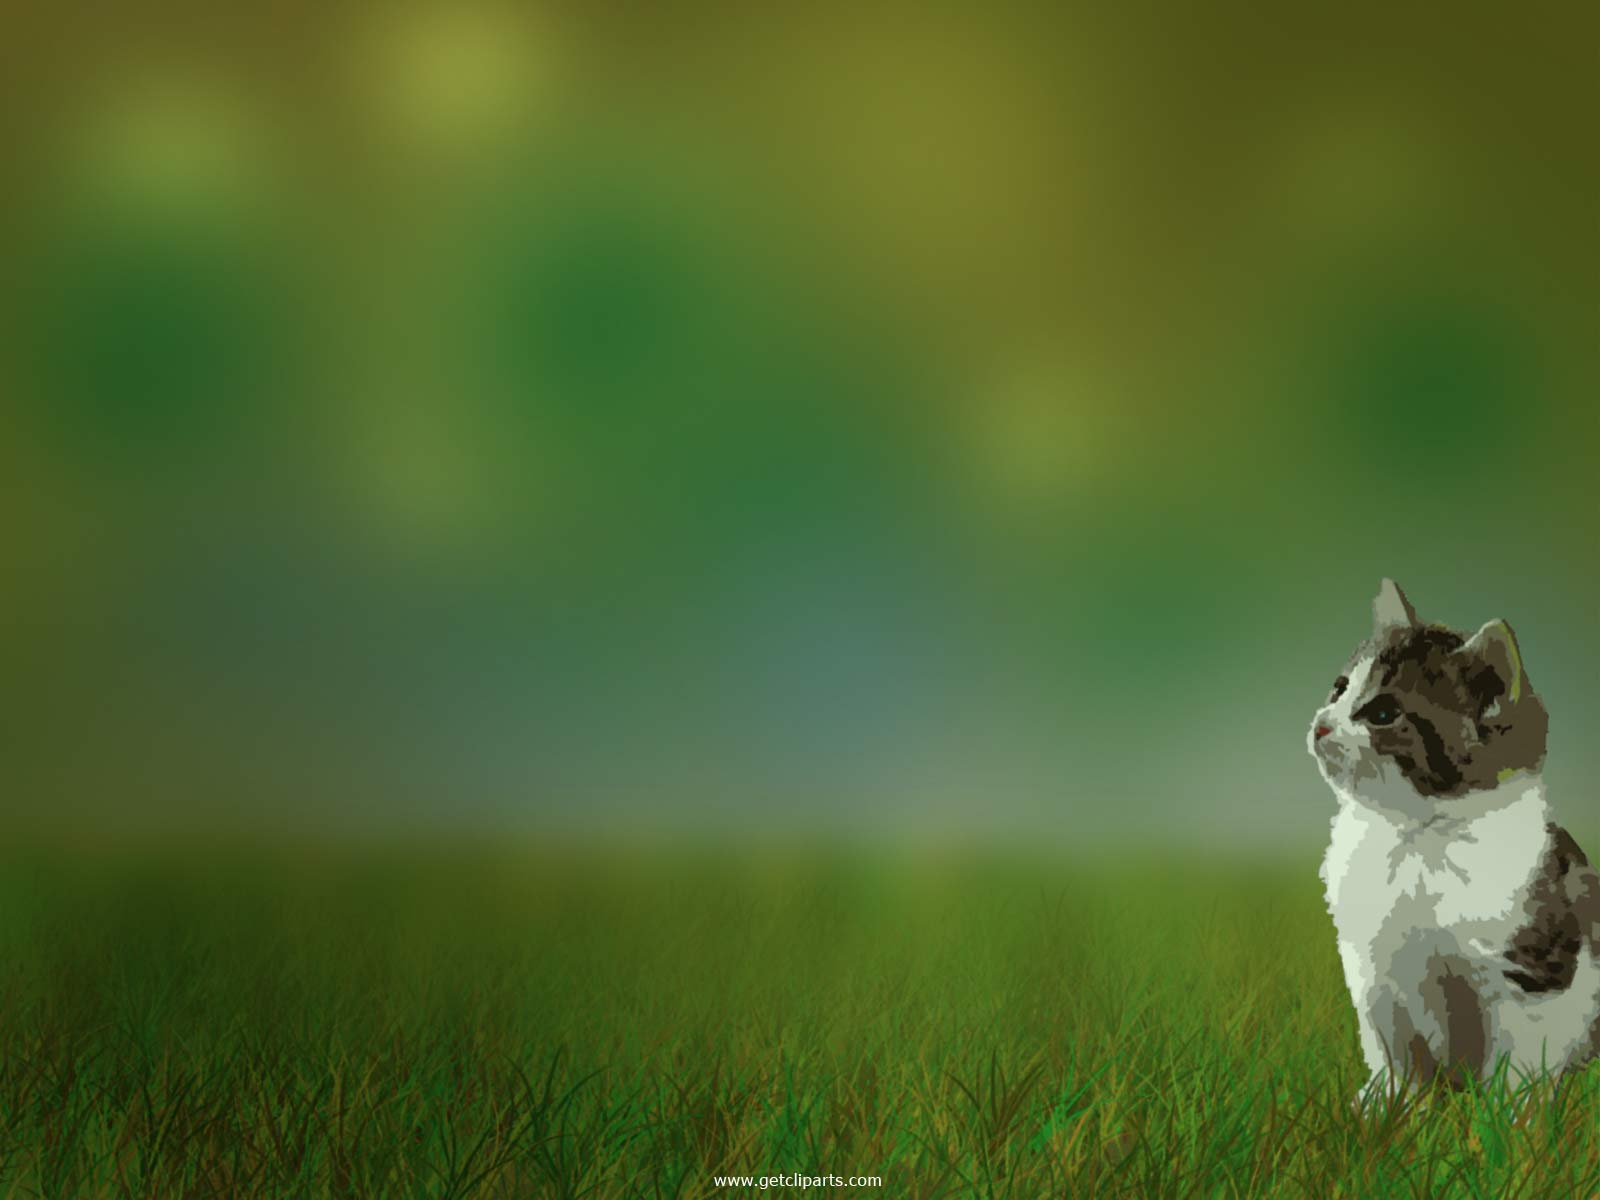 Wallpaper Funny Dog Pictures